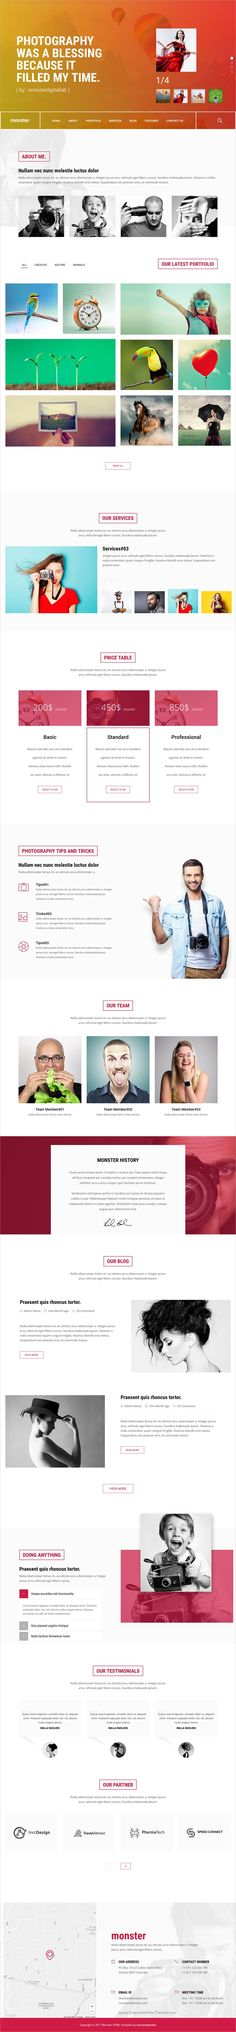 Monster is a modern, clean and elegant 4in1 #design #HTML5 Bootstrap template for creative #business websites download now➩ https://themeforest.net/item/monster-creative-html-template/19253075?ref=Datasata